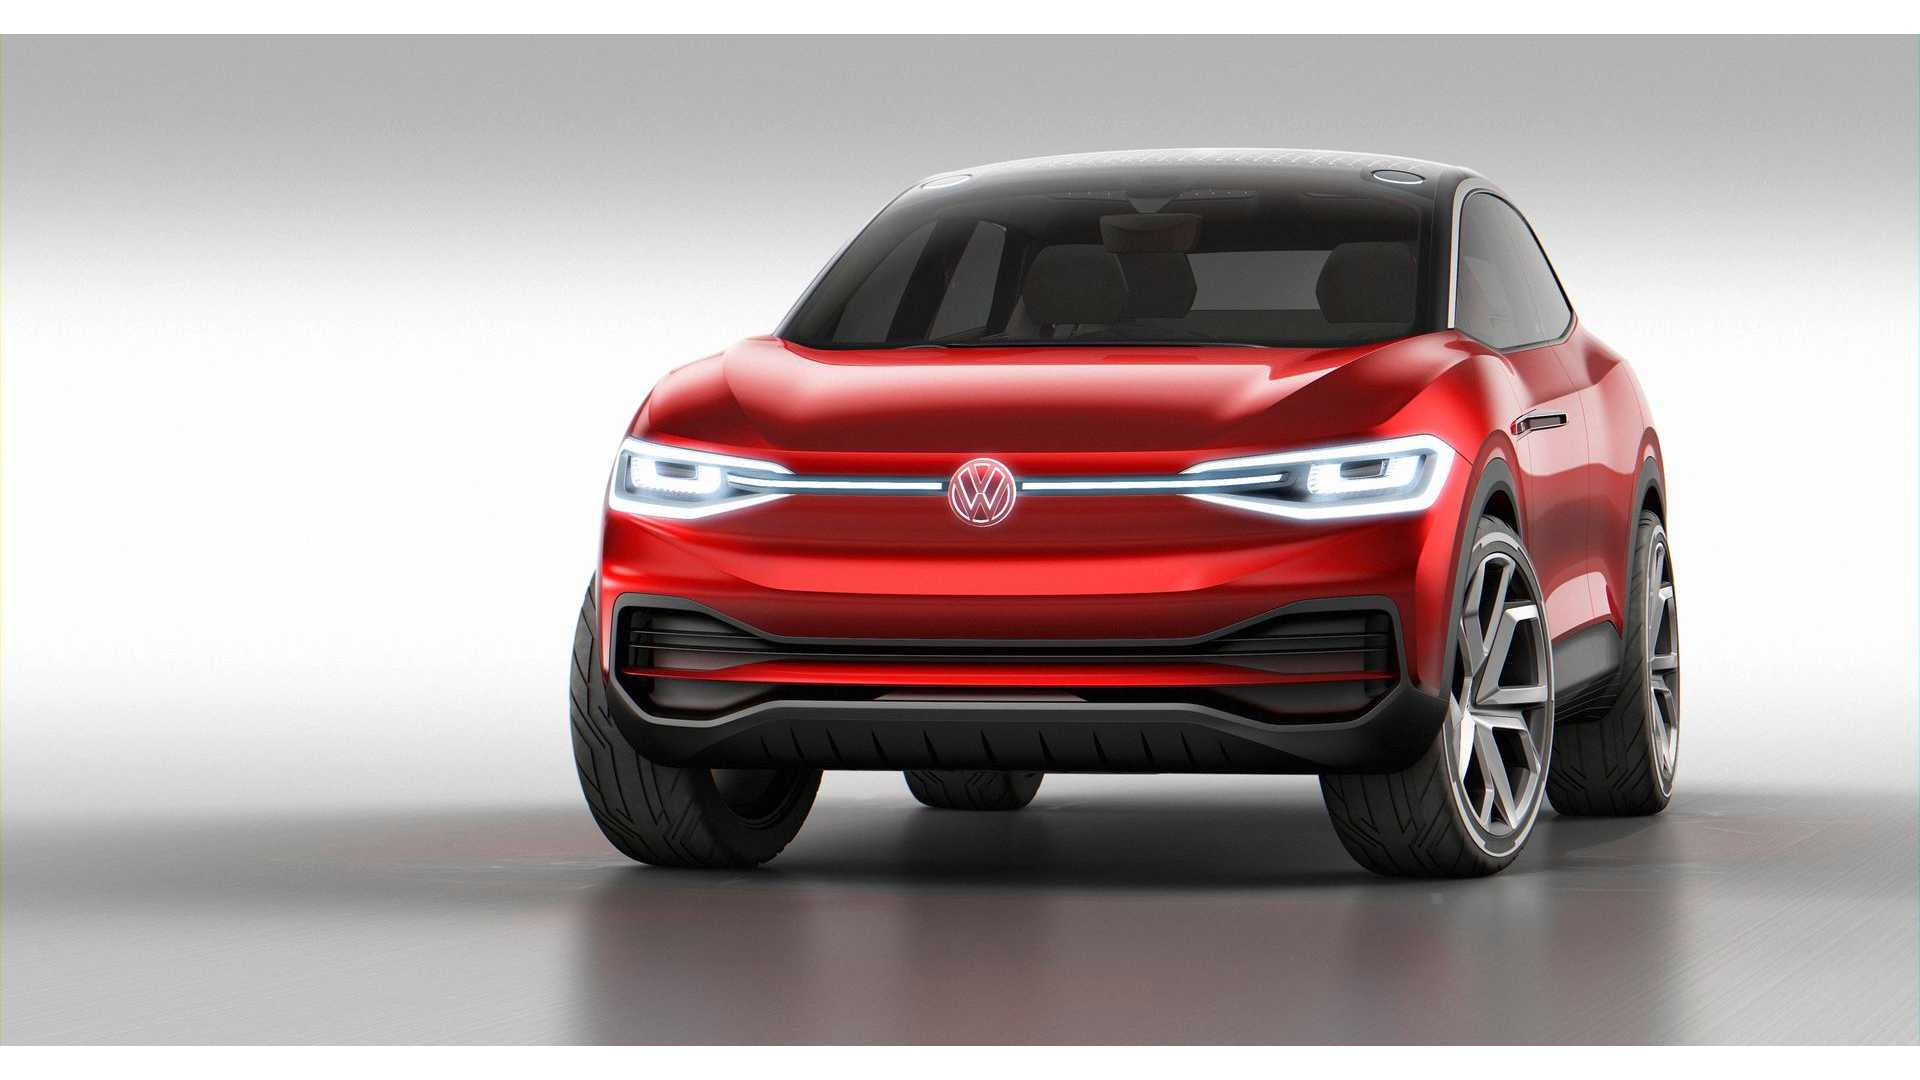 Volkswagen I D Crozz 311 Mile Electric Cuv For 30 000 Ish Before Incentives